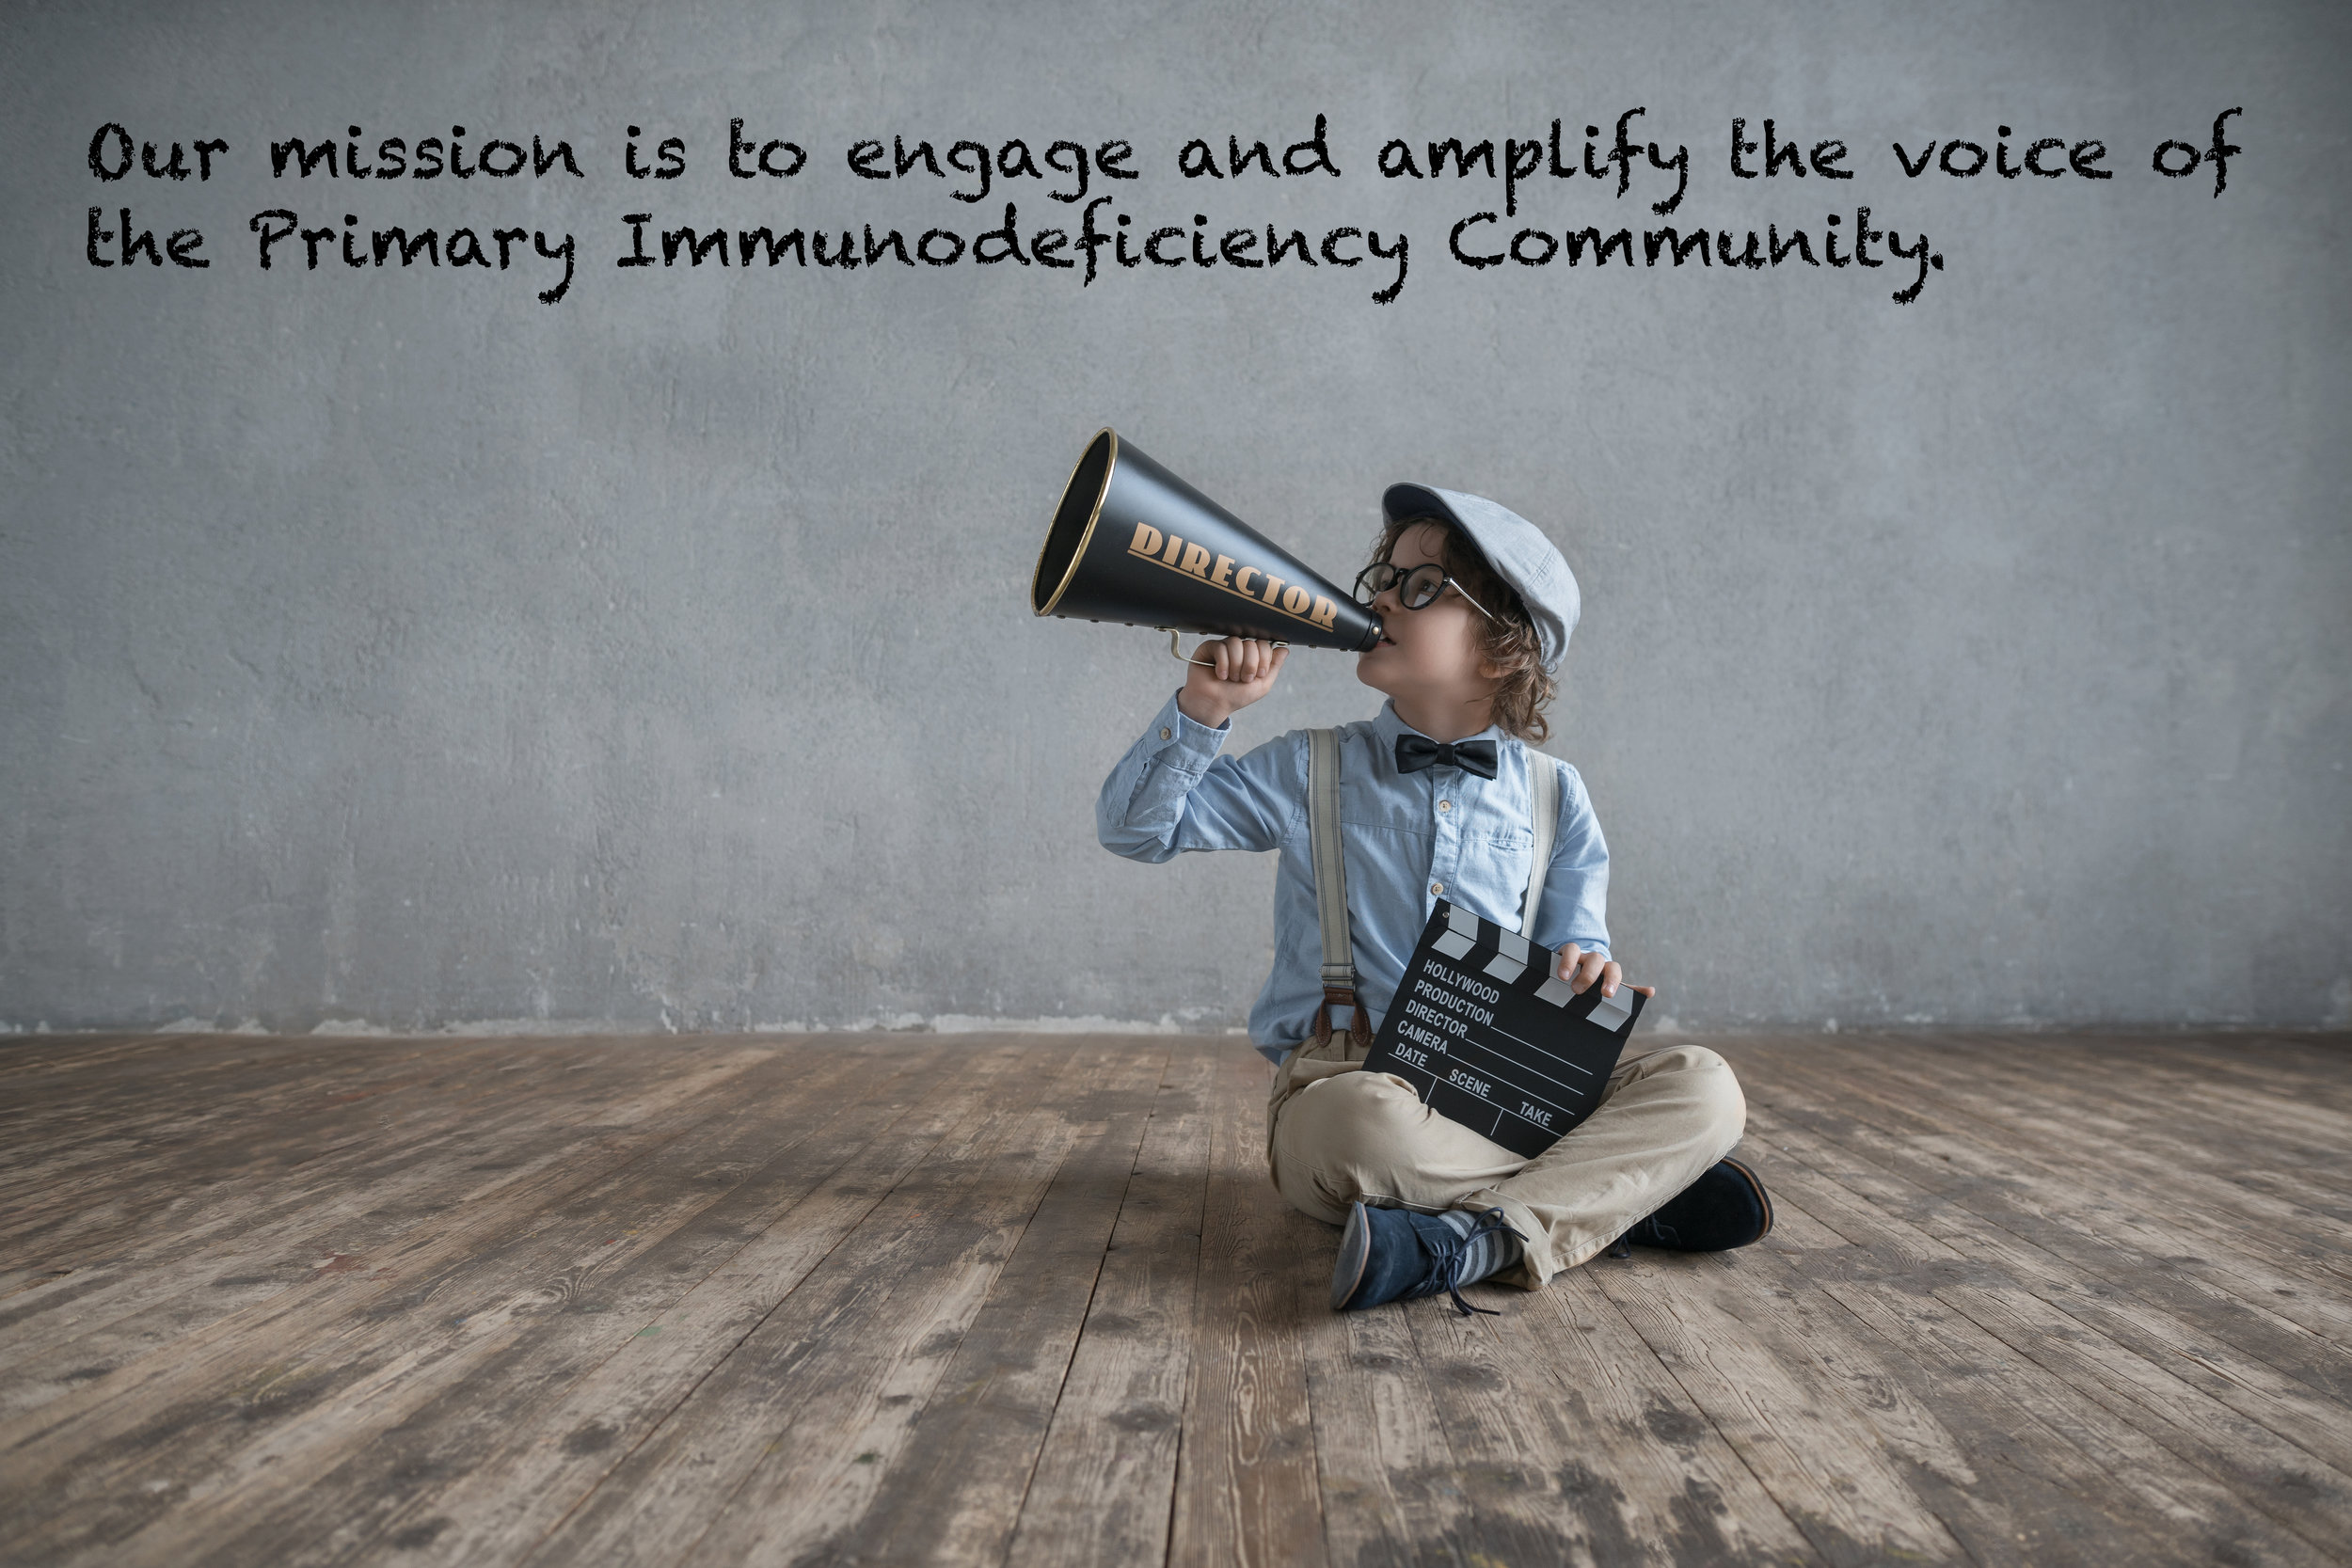 Mission for Primary Immunodeficiency Community